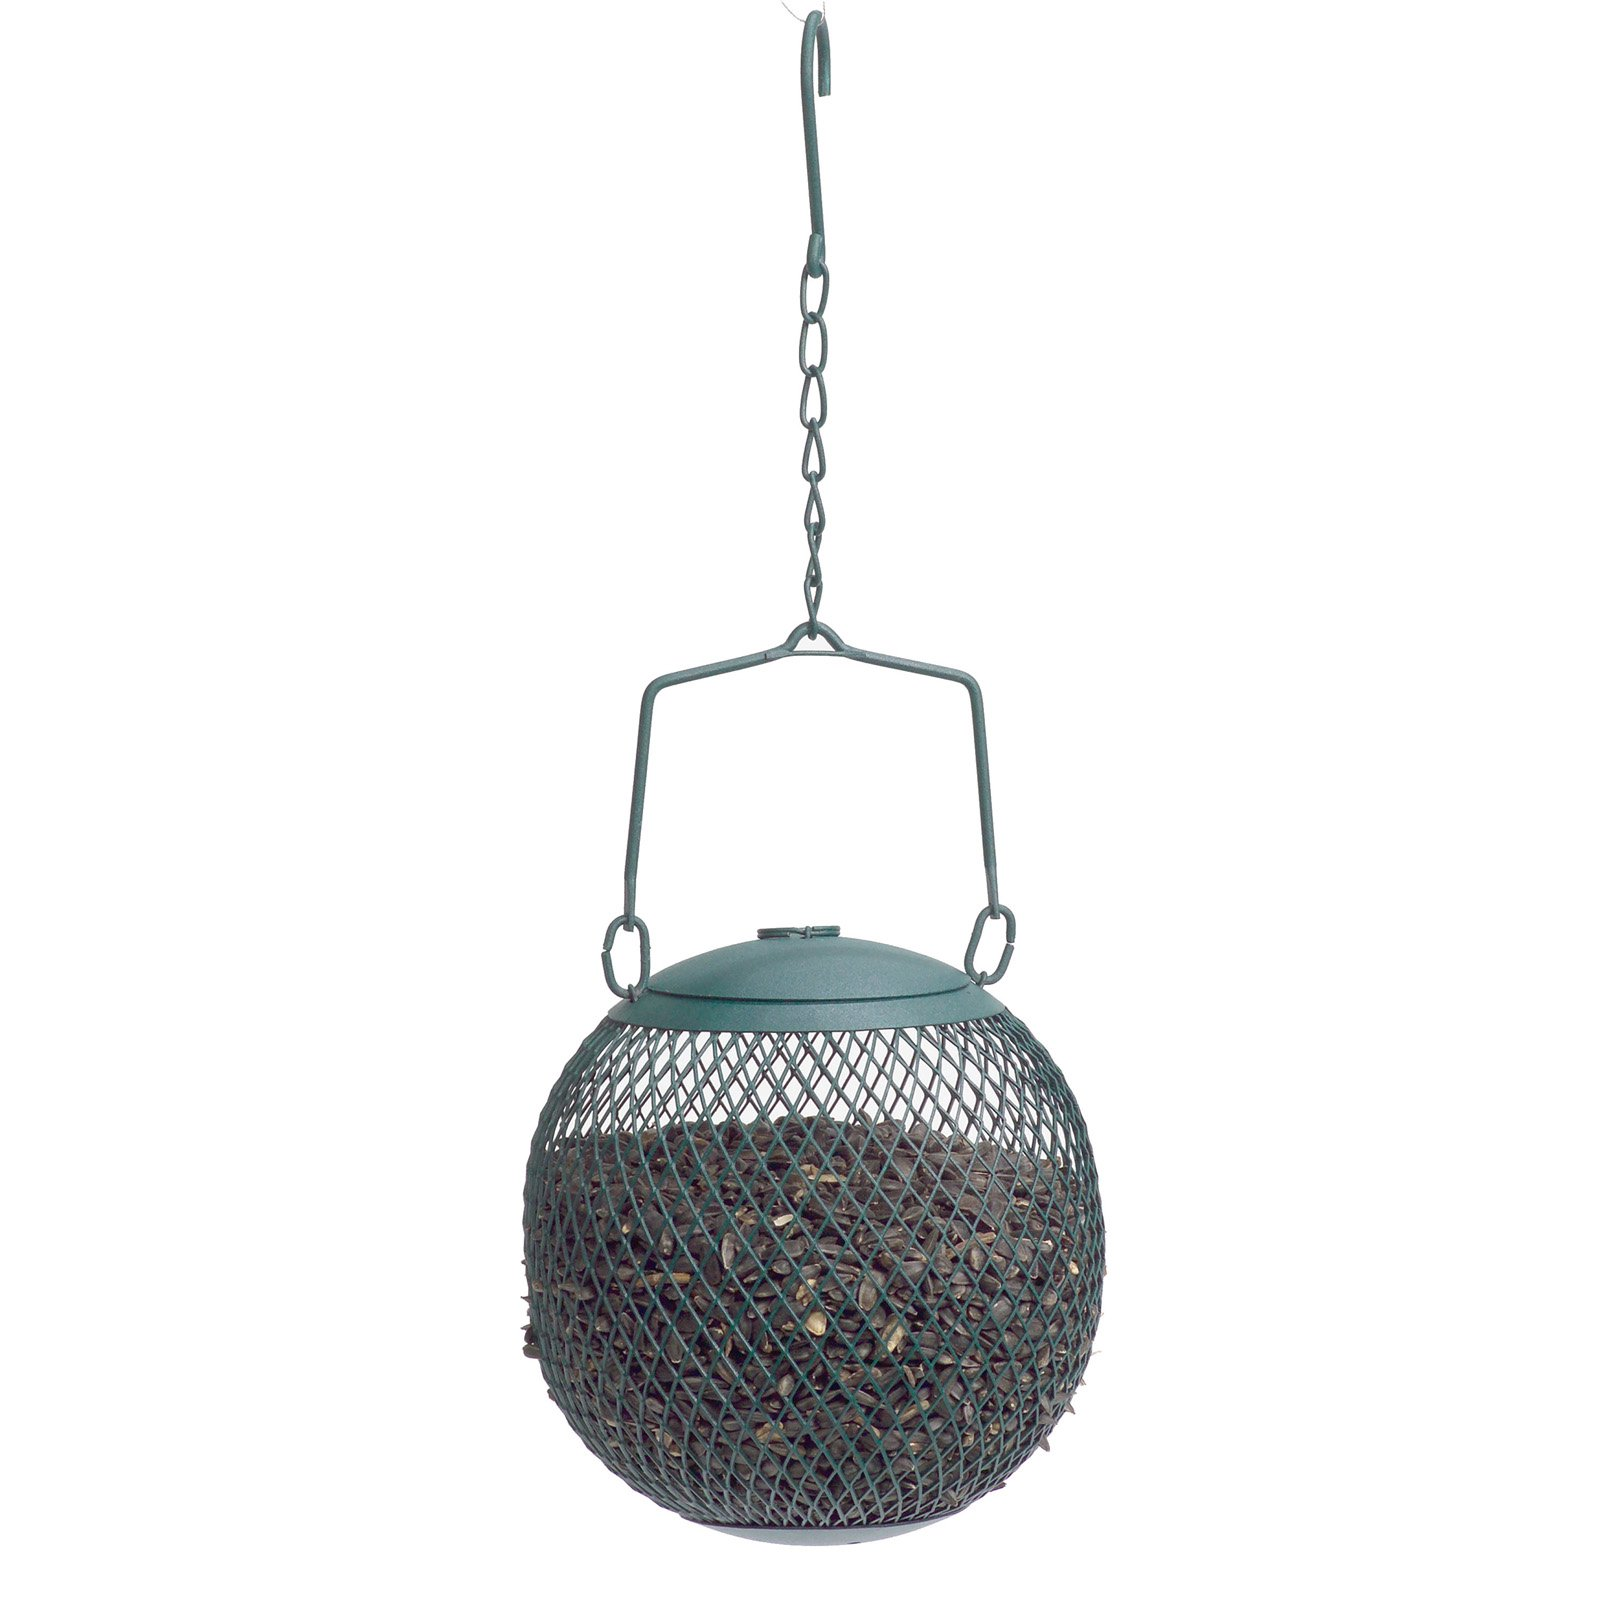 No No Green Seed Ball Wild Birdfeeder by woodstream